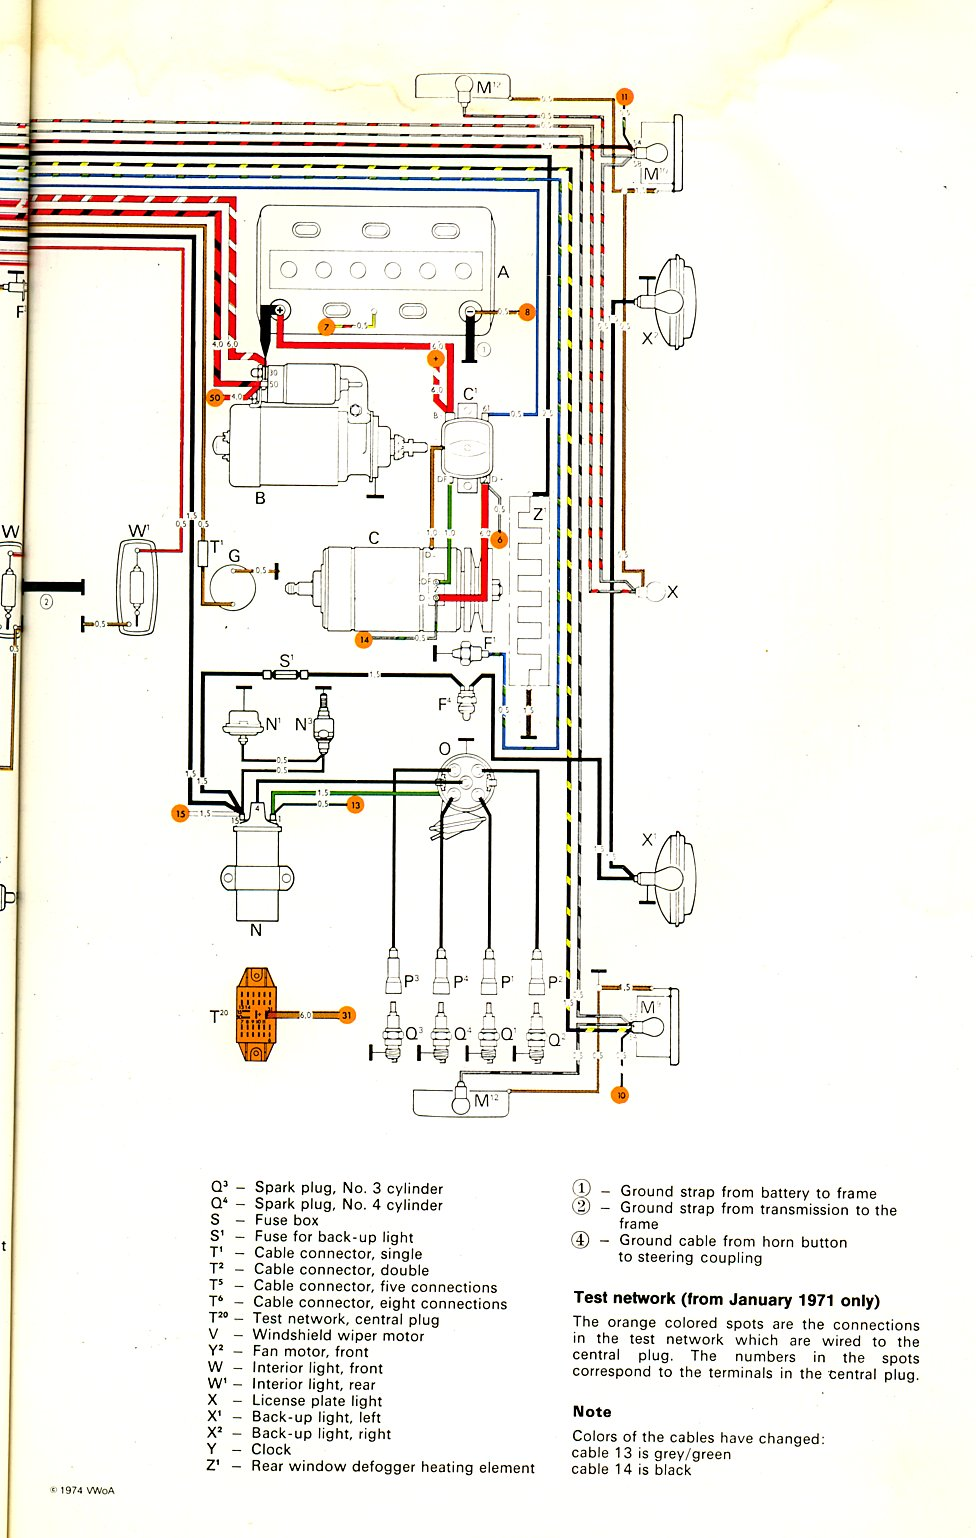 1957 Vw Wiring Diagram Library Thesamba Com Type 2 Diagrams 1969